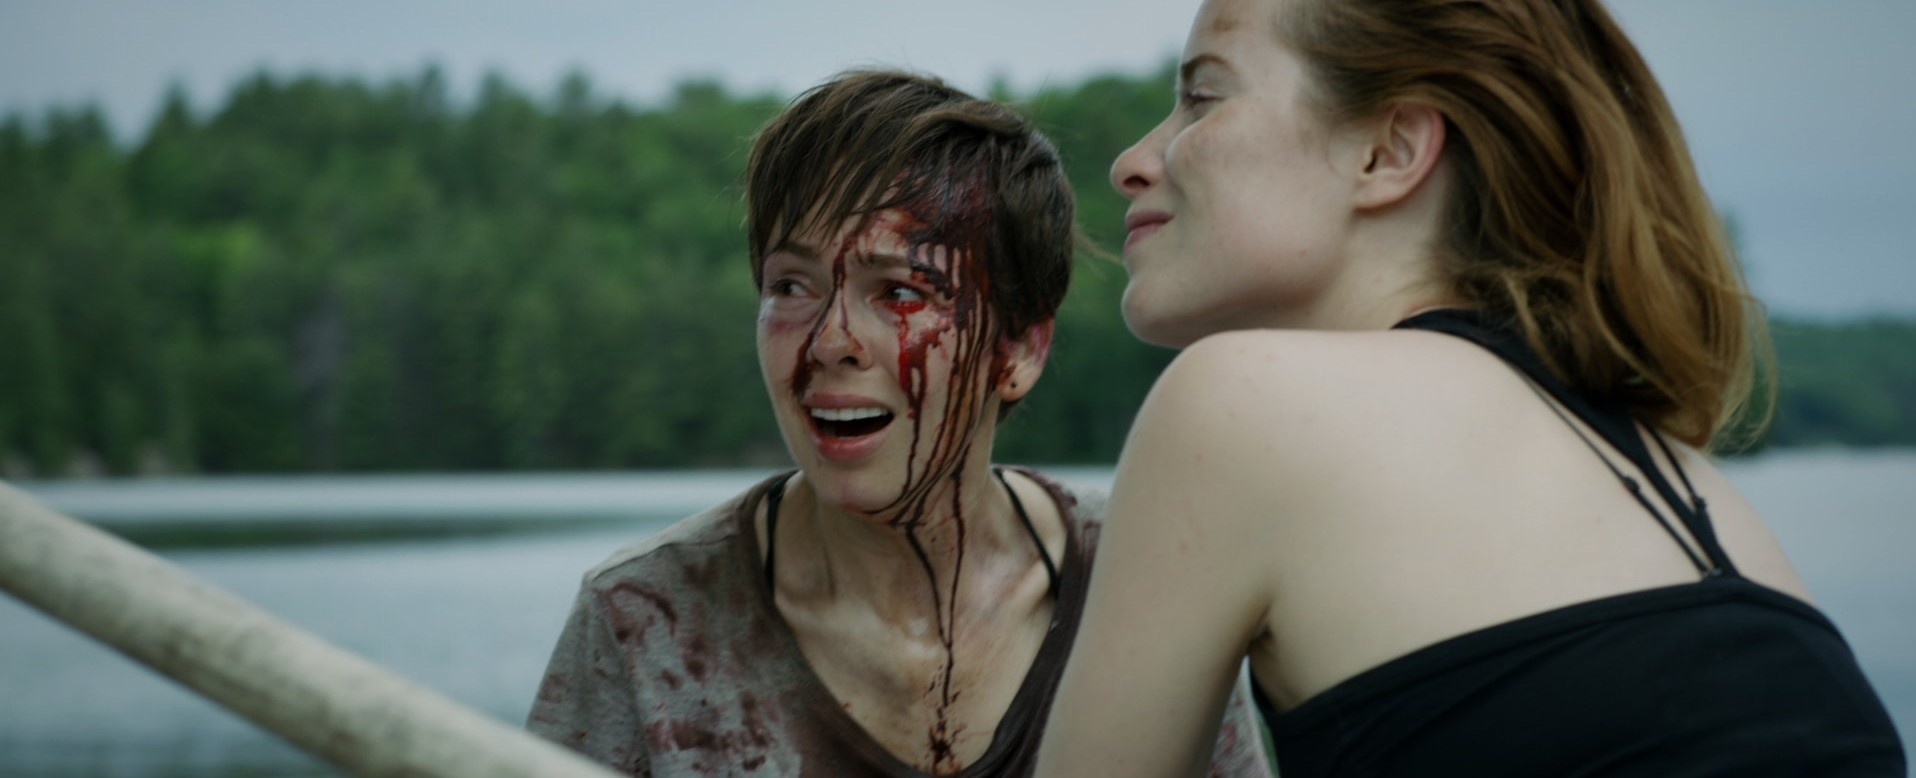 The lesbian slasher What Keeps You Alive challenges the horror genre